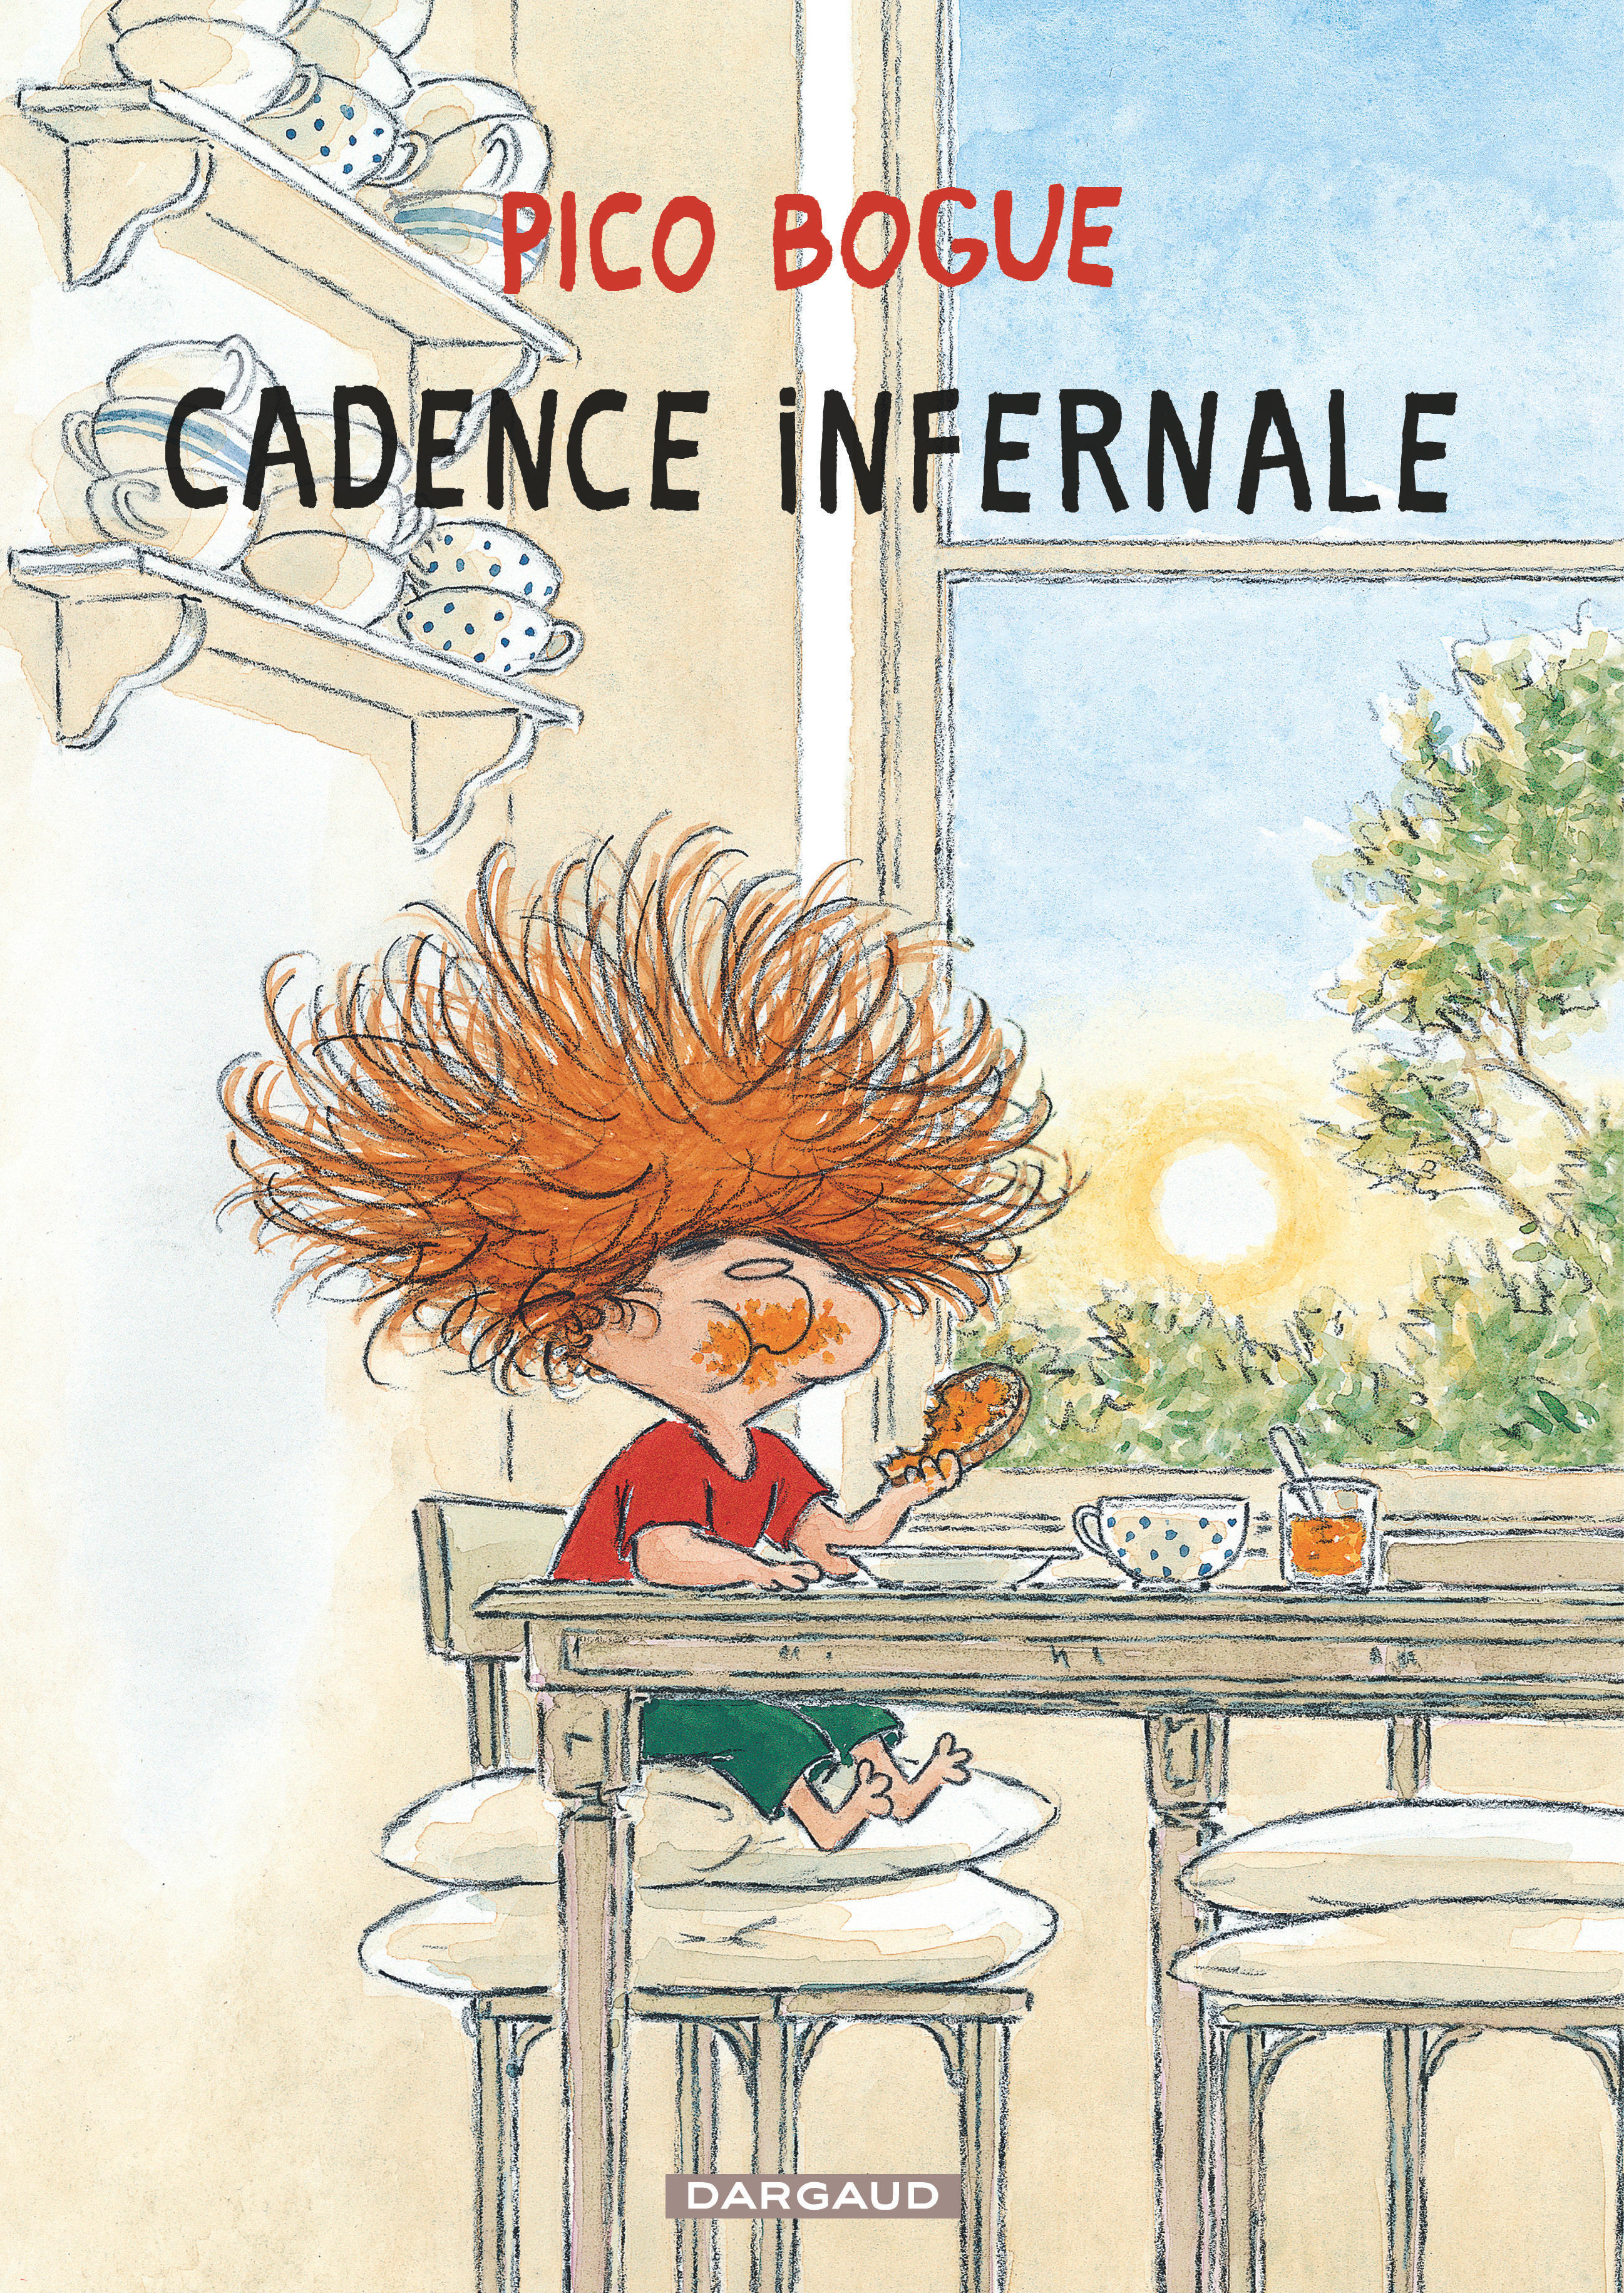 CADENCE INFERNALE T7 - PICO BOGUE